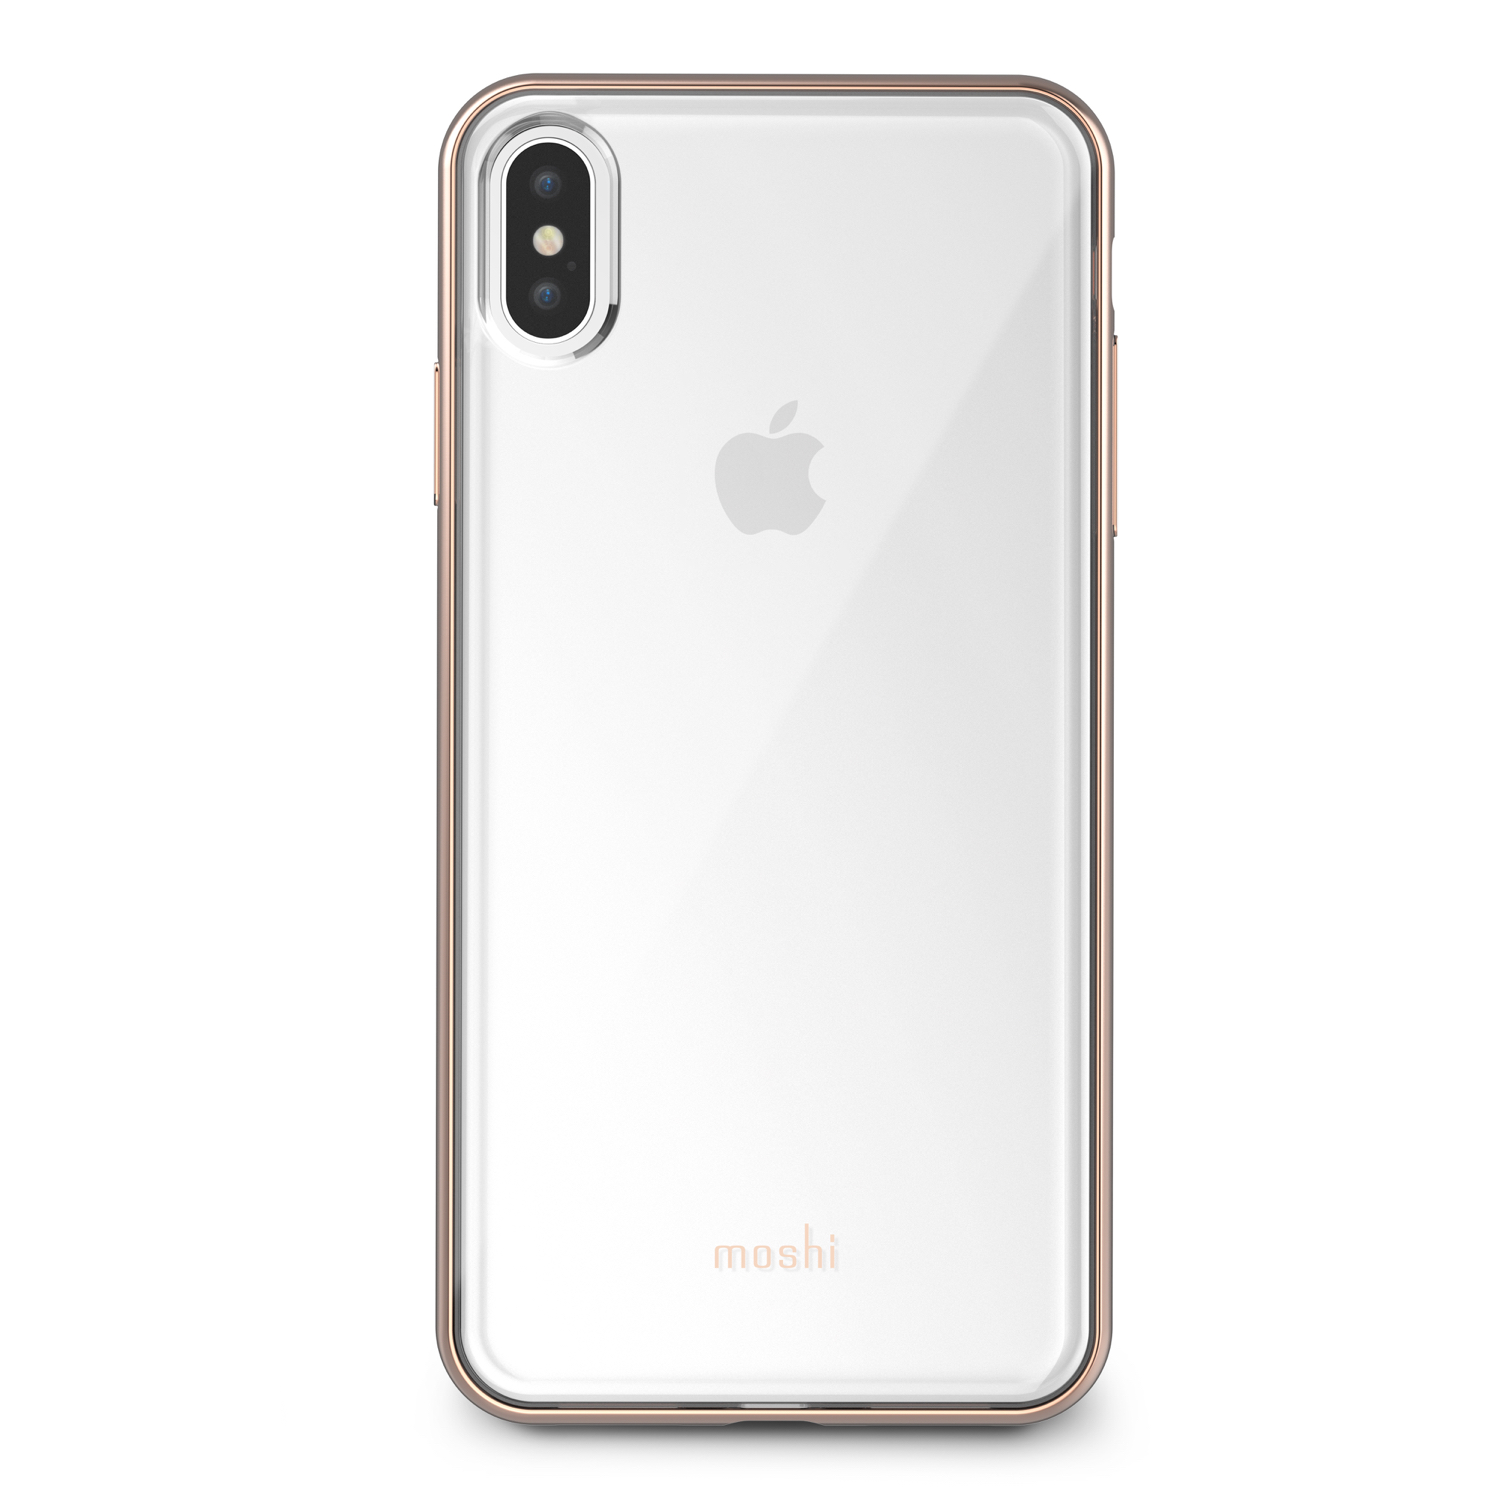 Moshi Vitros Case for iPhone XS MAX